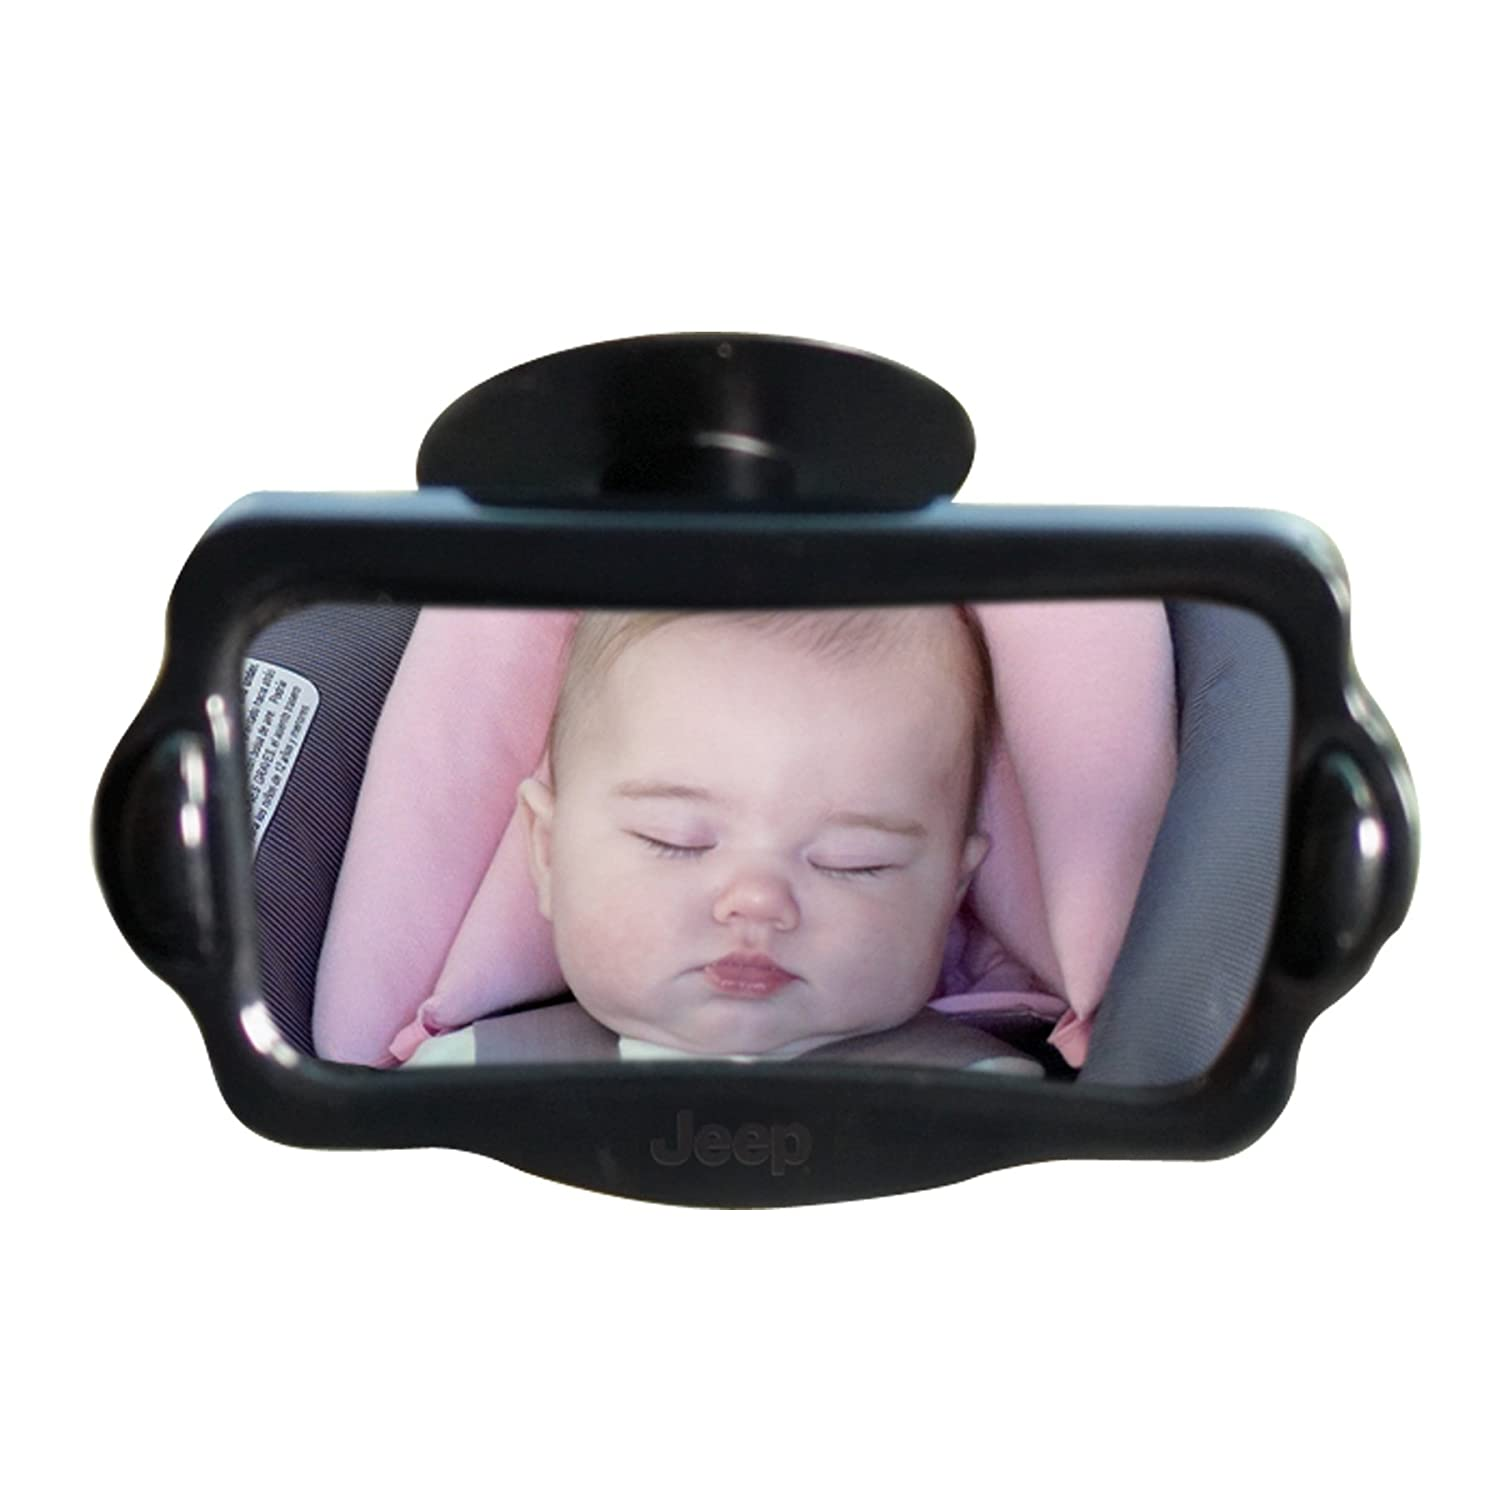 Jeep Baby View Mirror 90180R